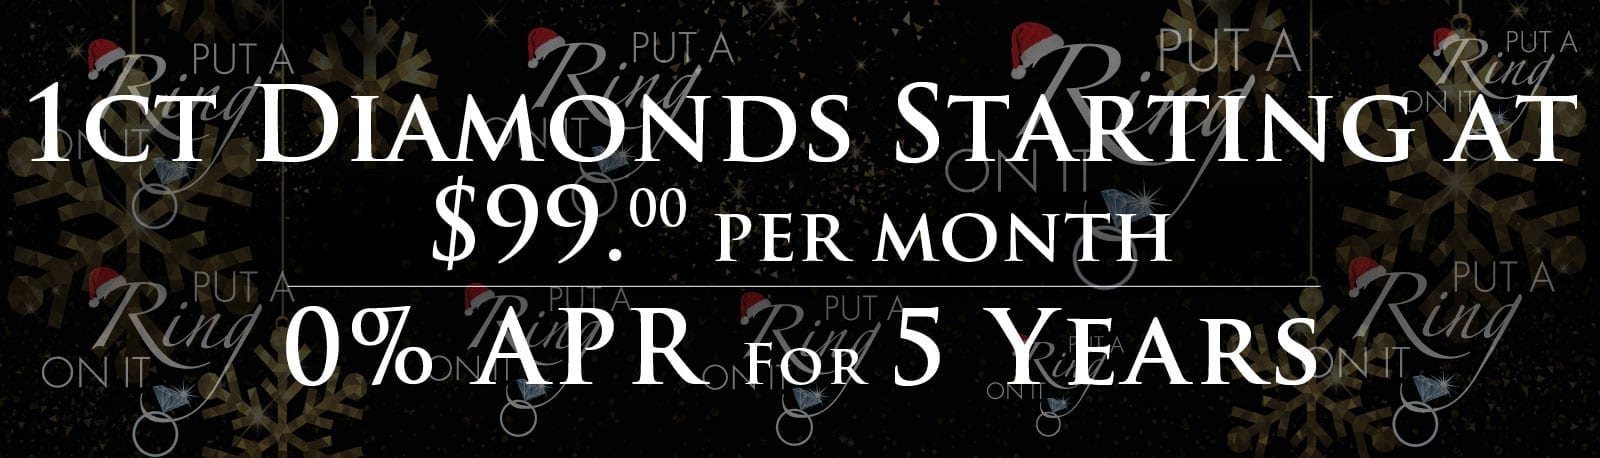 1CT Diamonds Starting at $99 per month